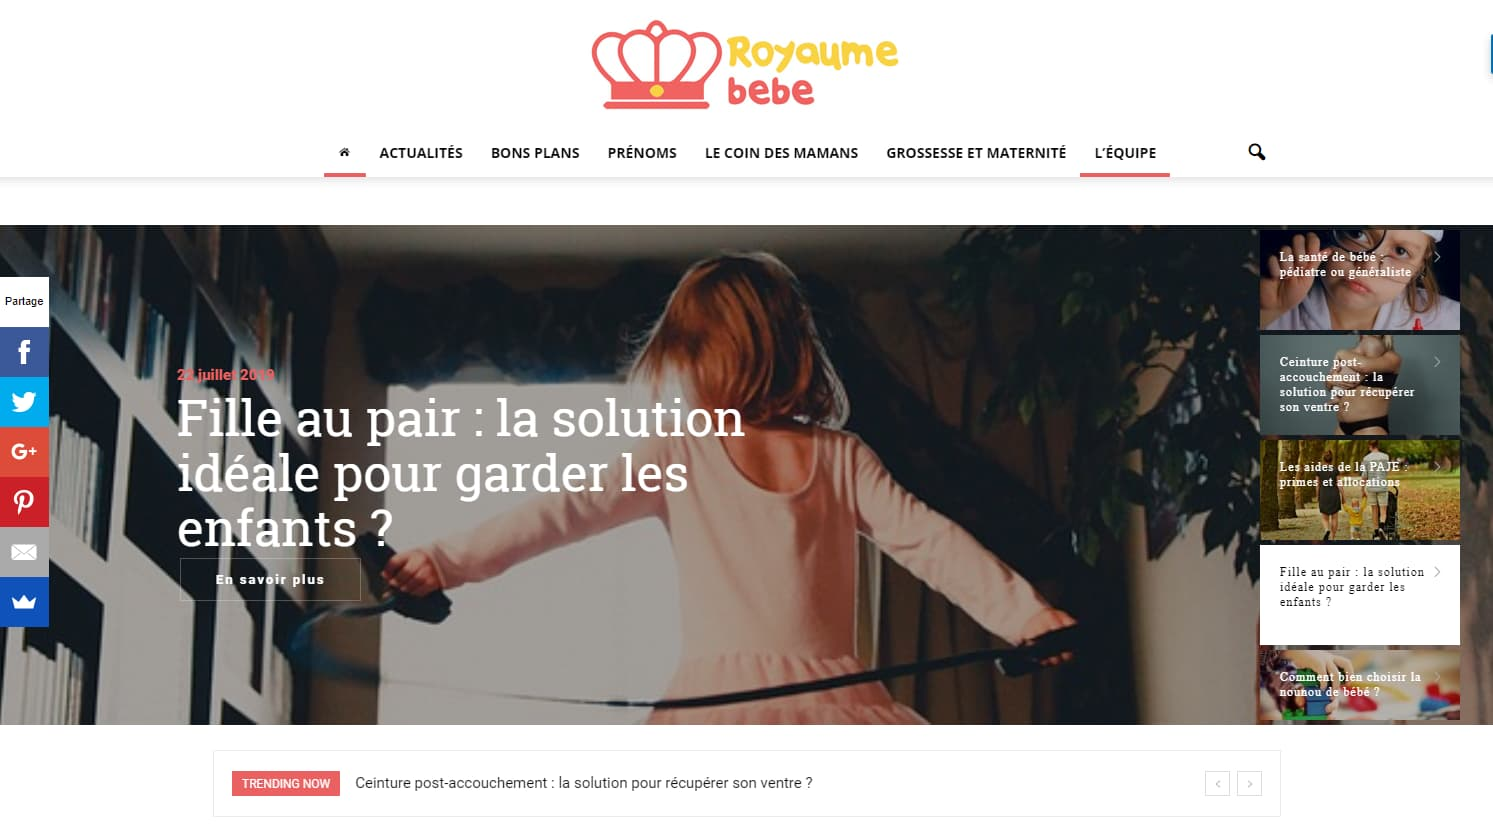 website royaume bebe